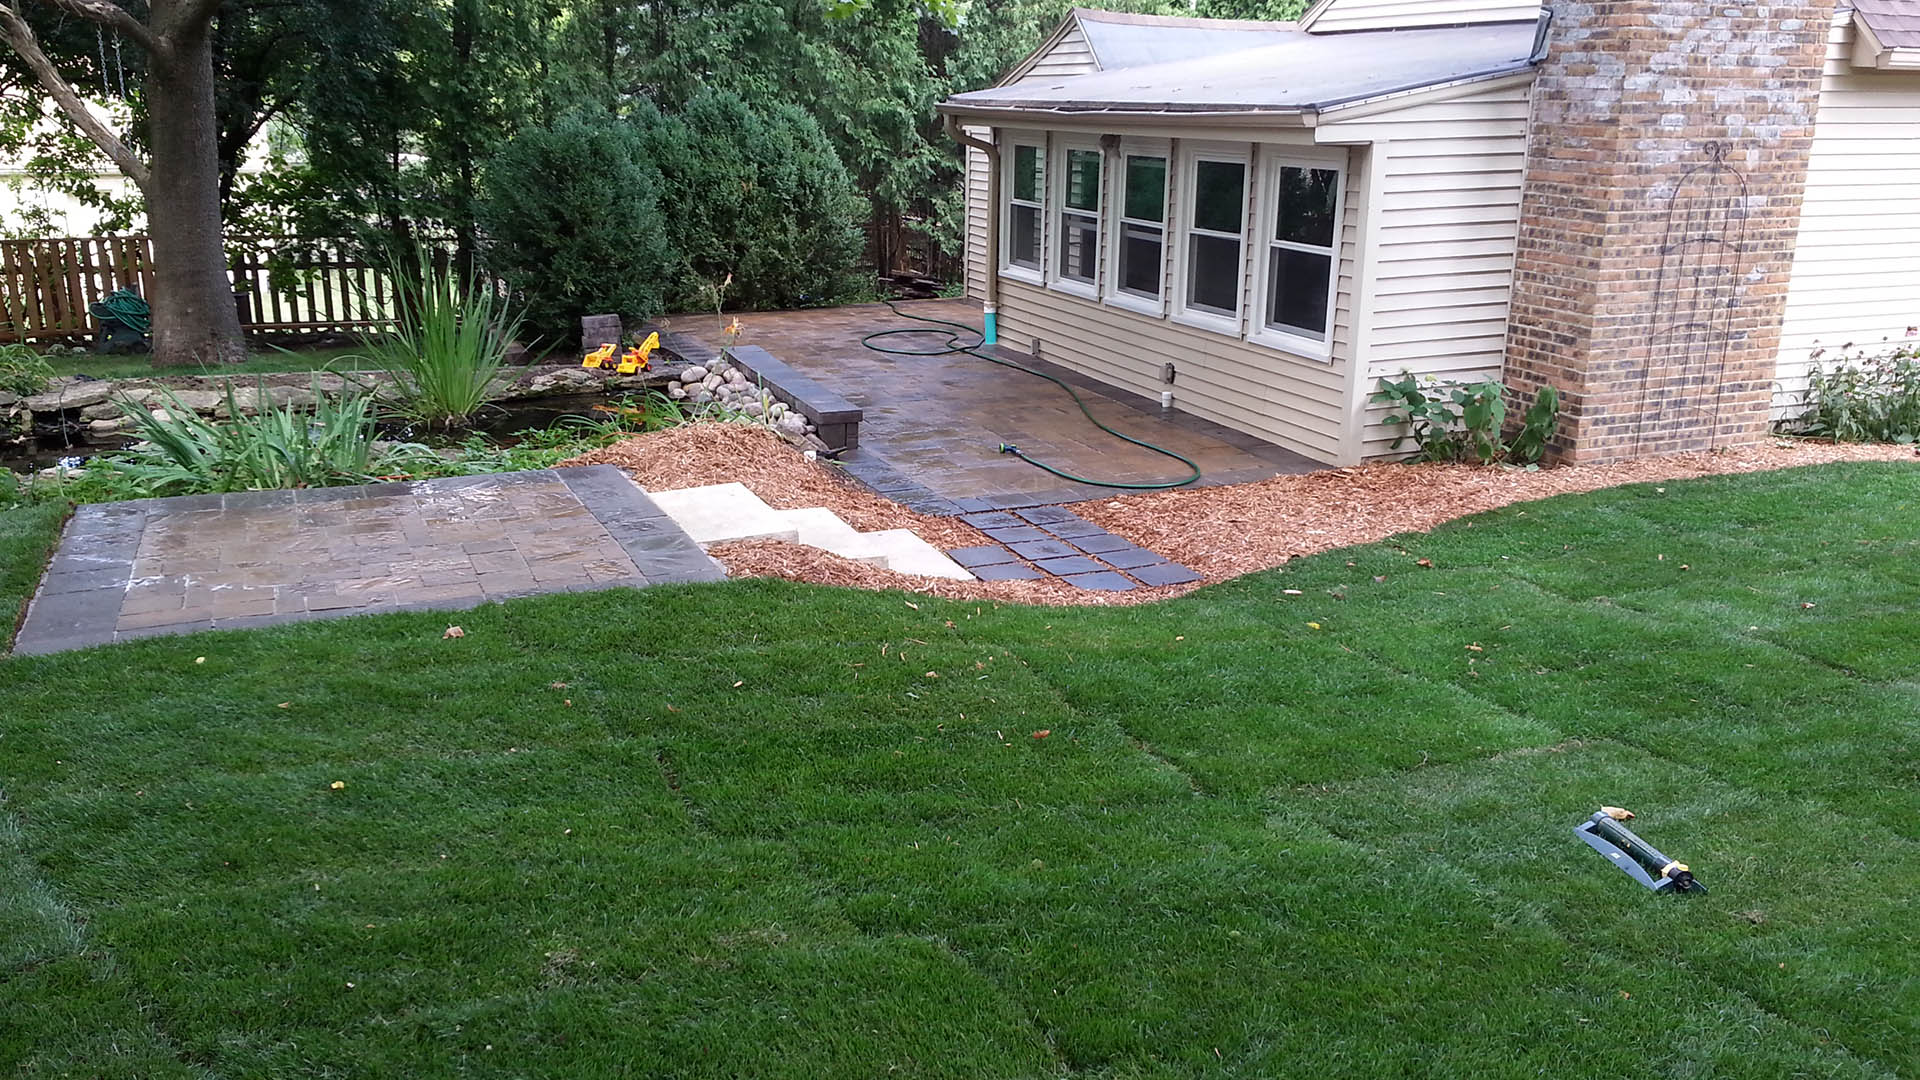 JL Property Services LLC Landscaping, Snow Plowing and Concrete Edging slide 1